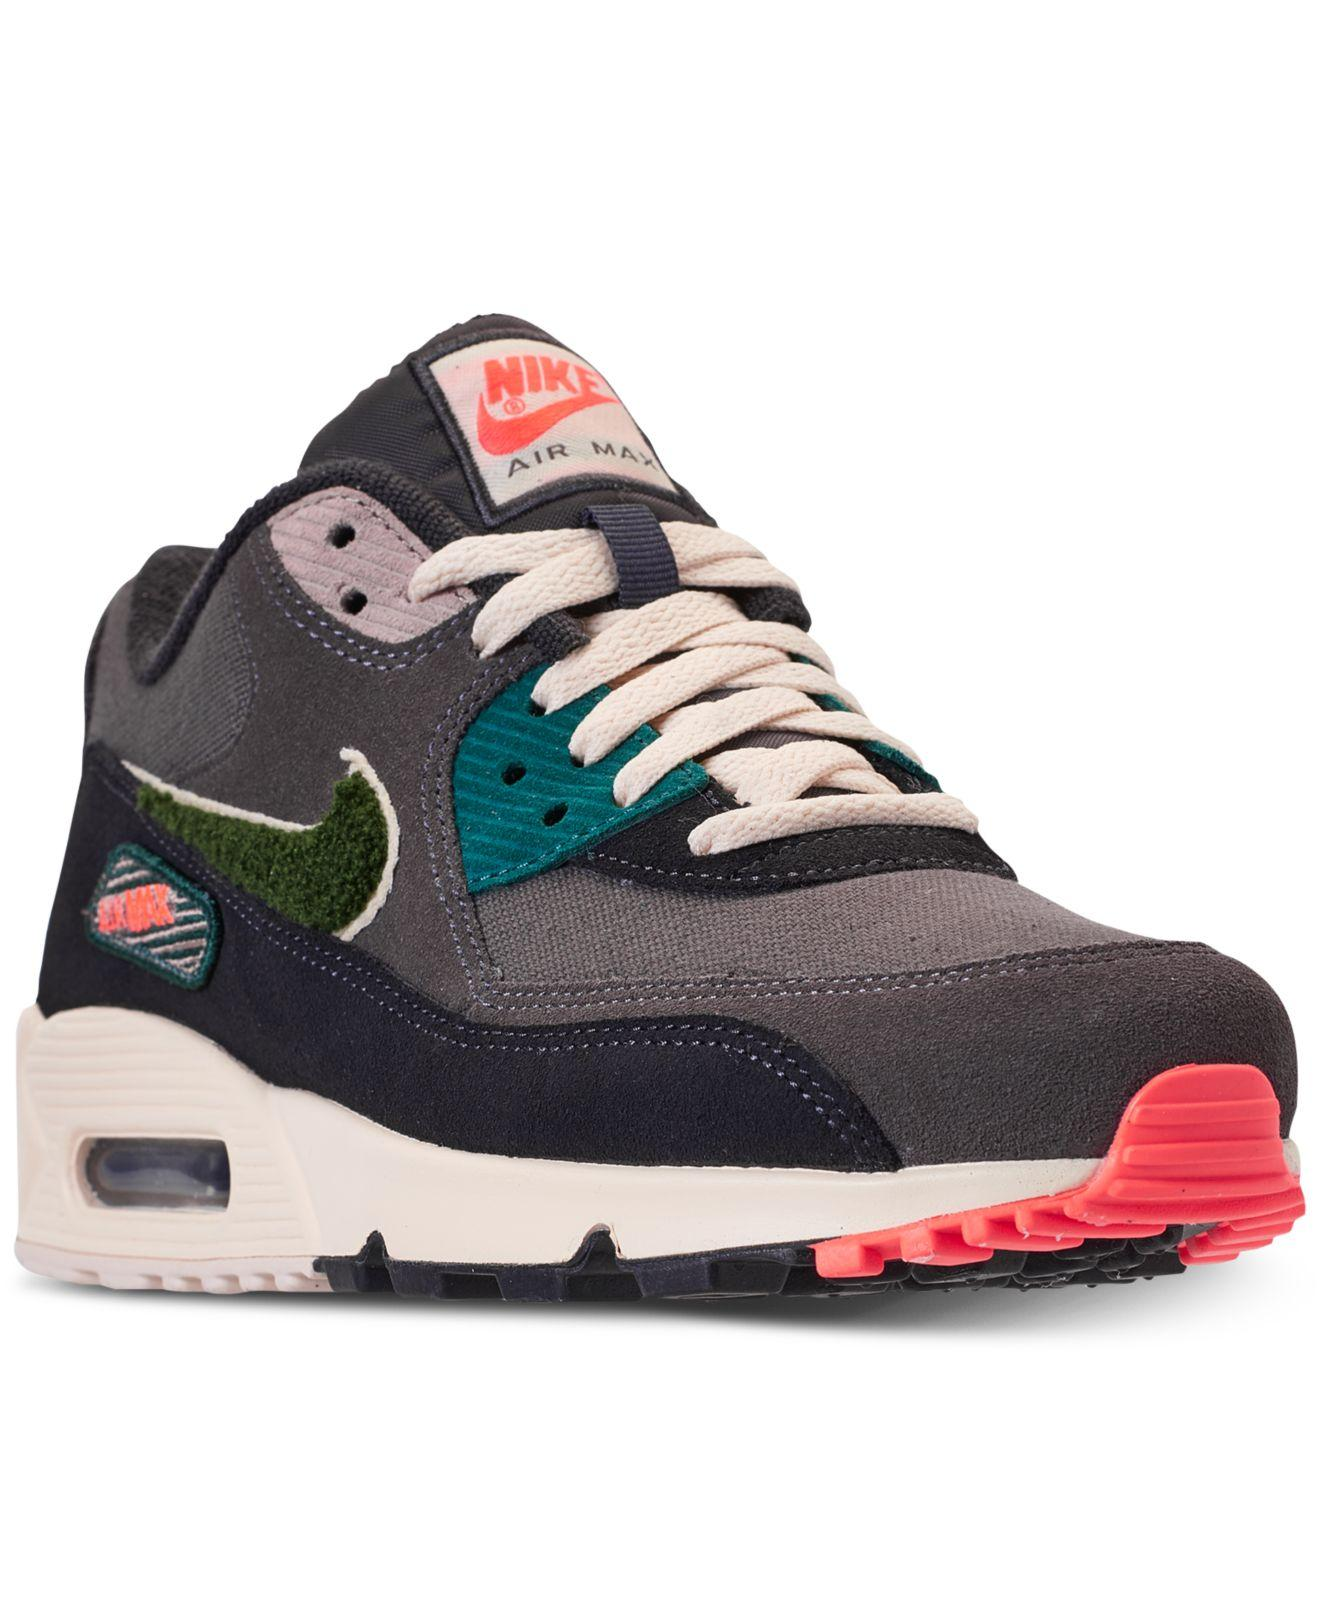 Lyst - Nike Air Max 90 Premium Se Casual Sneakers From Finish Line ... a88061a5e